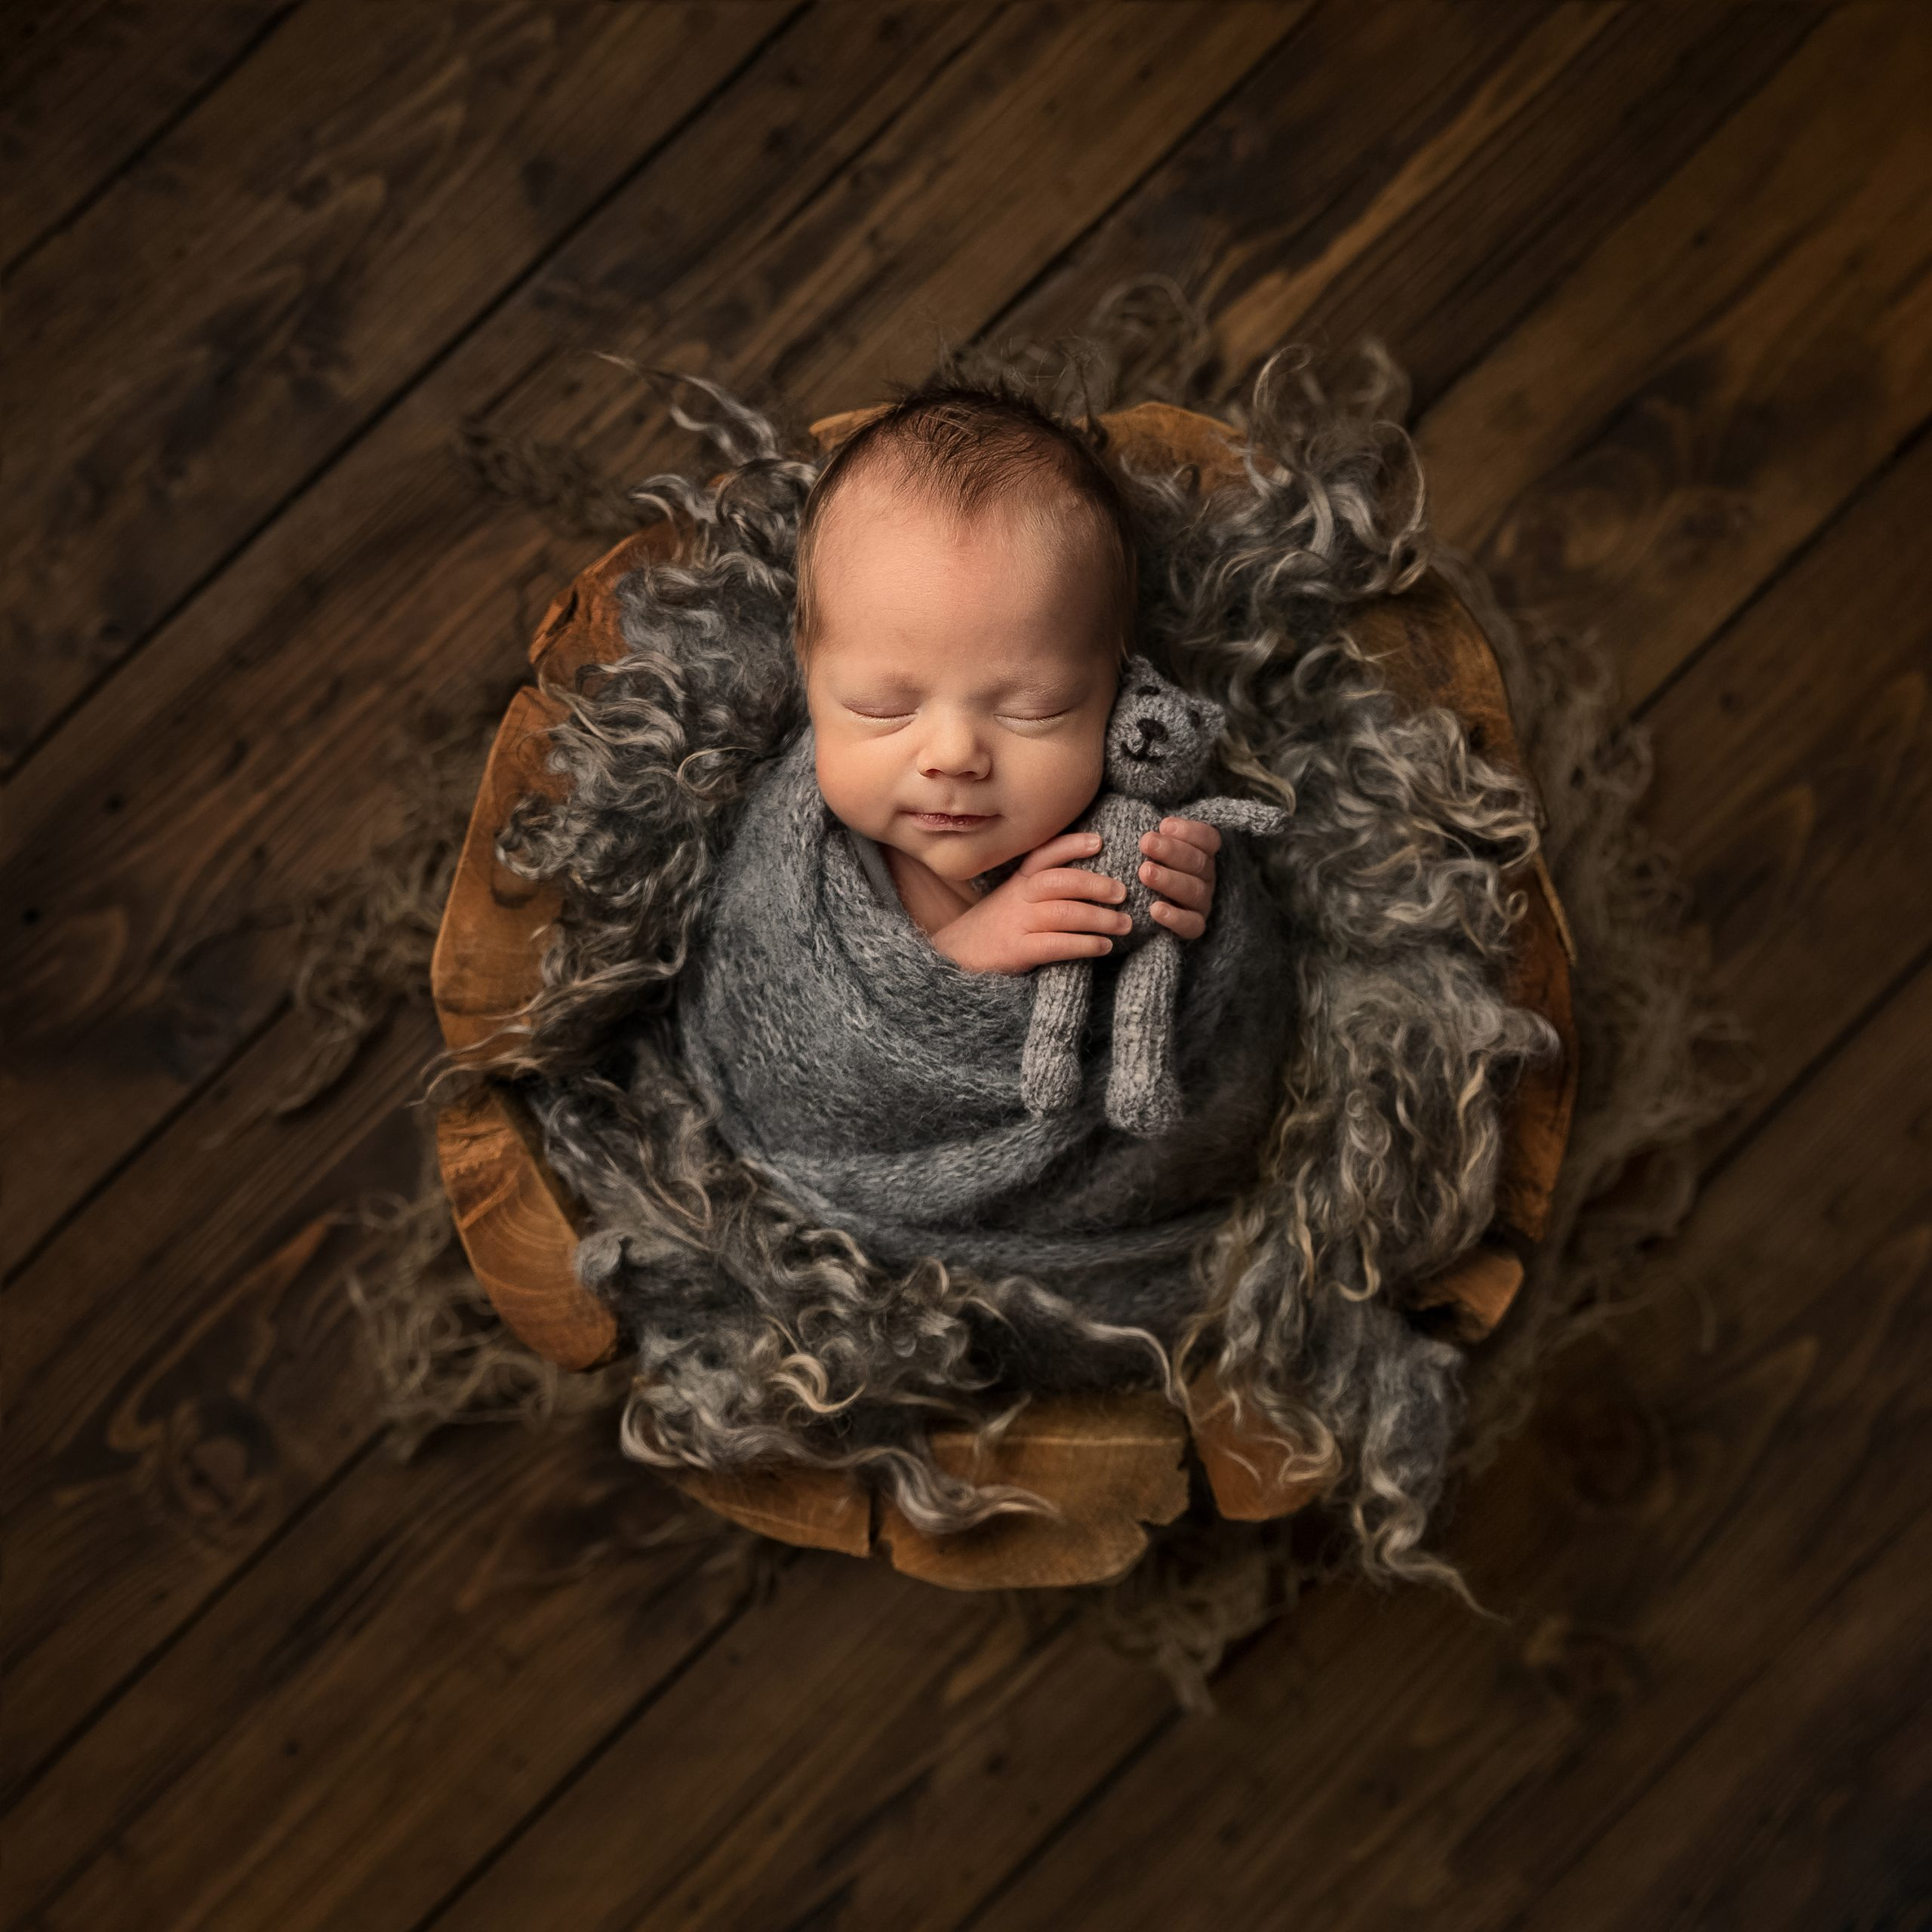 Newborn baby wrapped in grey with a little teddy as part of my Master Craftsman in Newborn Photography panel by award winning photographer